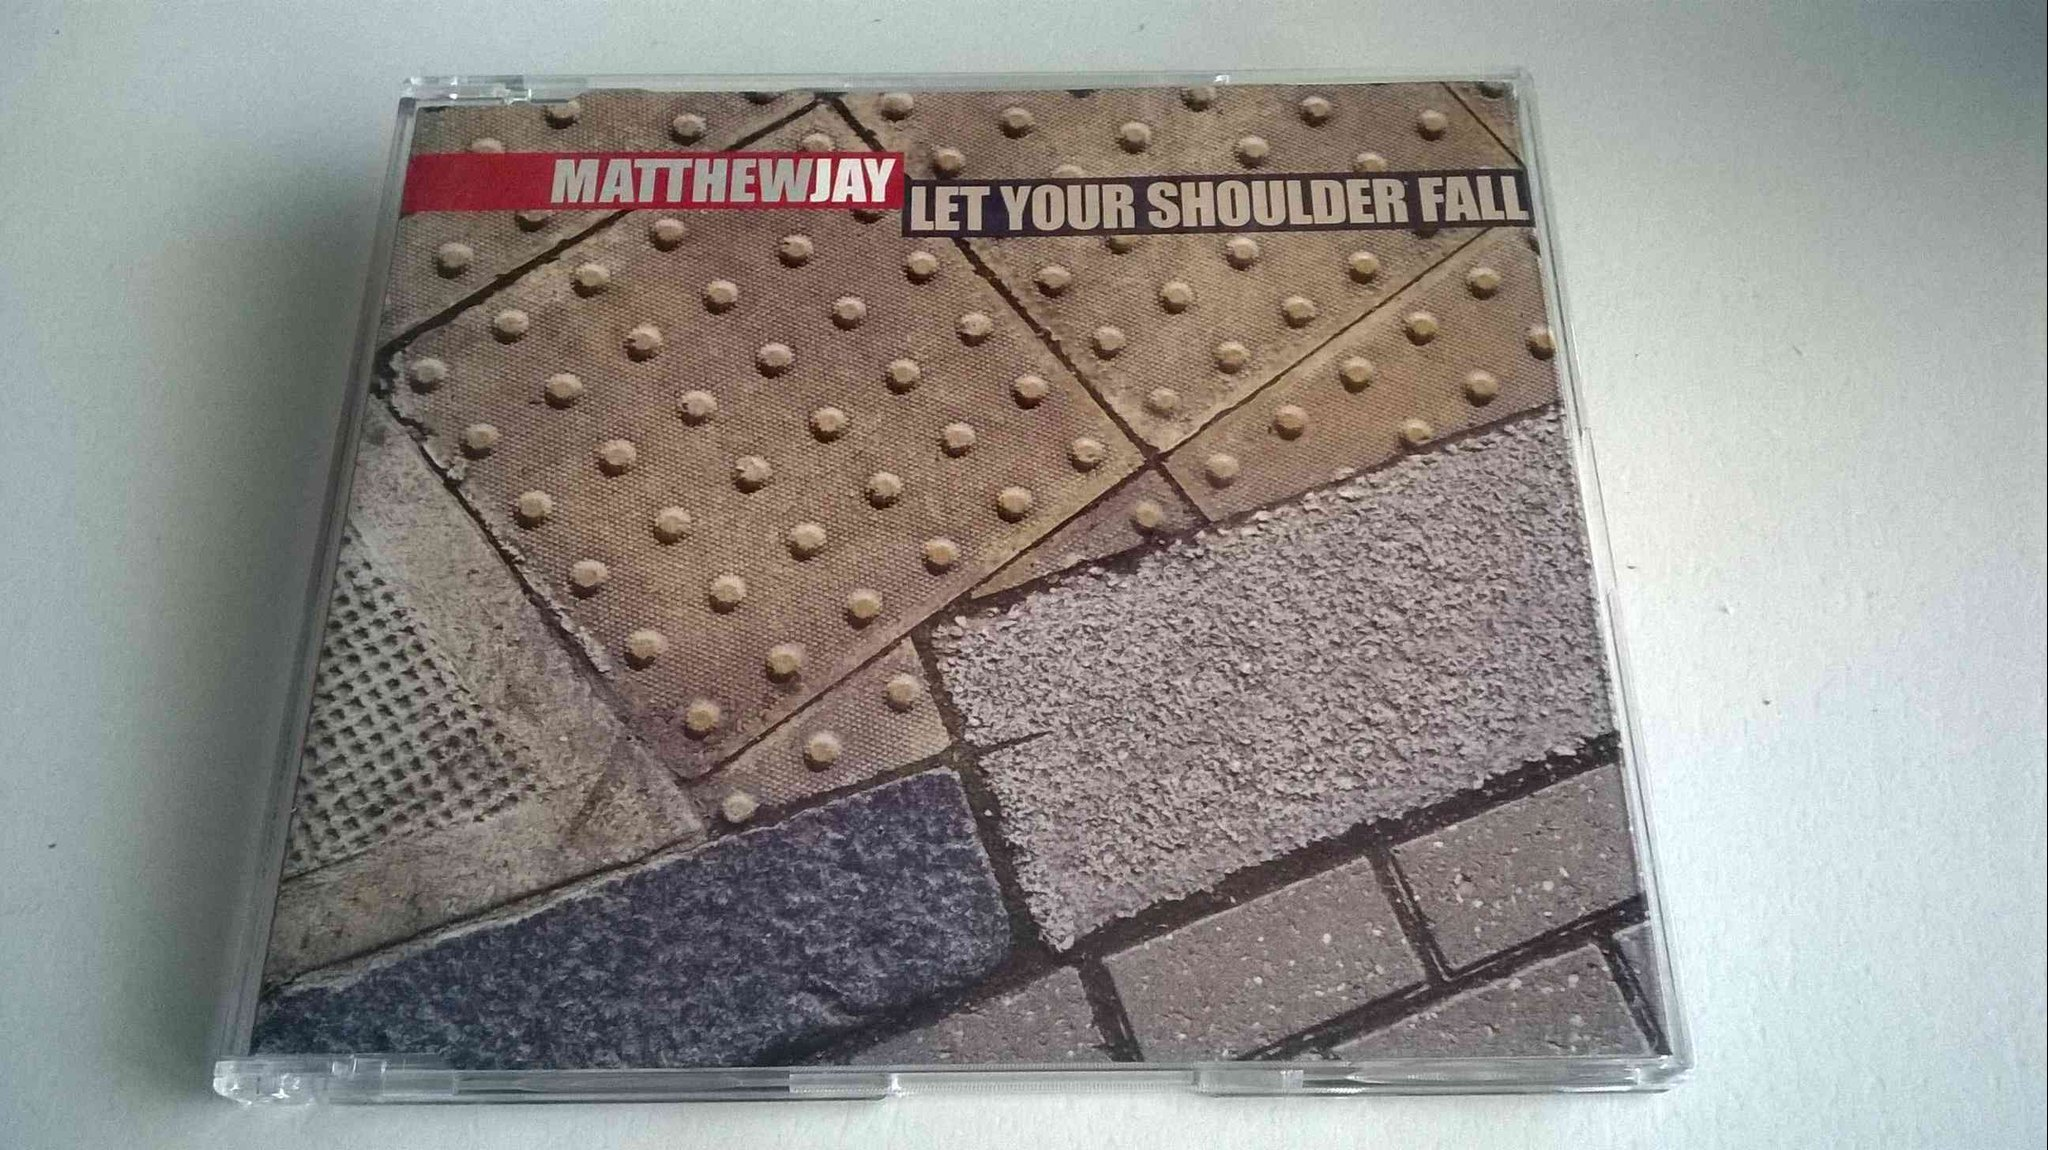 Matthew Jay ?- Let Your Shoulder Fall, CD, Single, Promo!